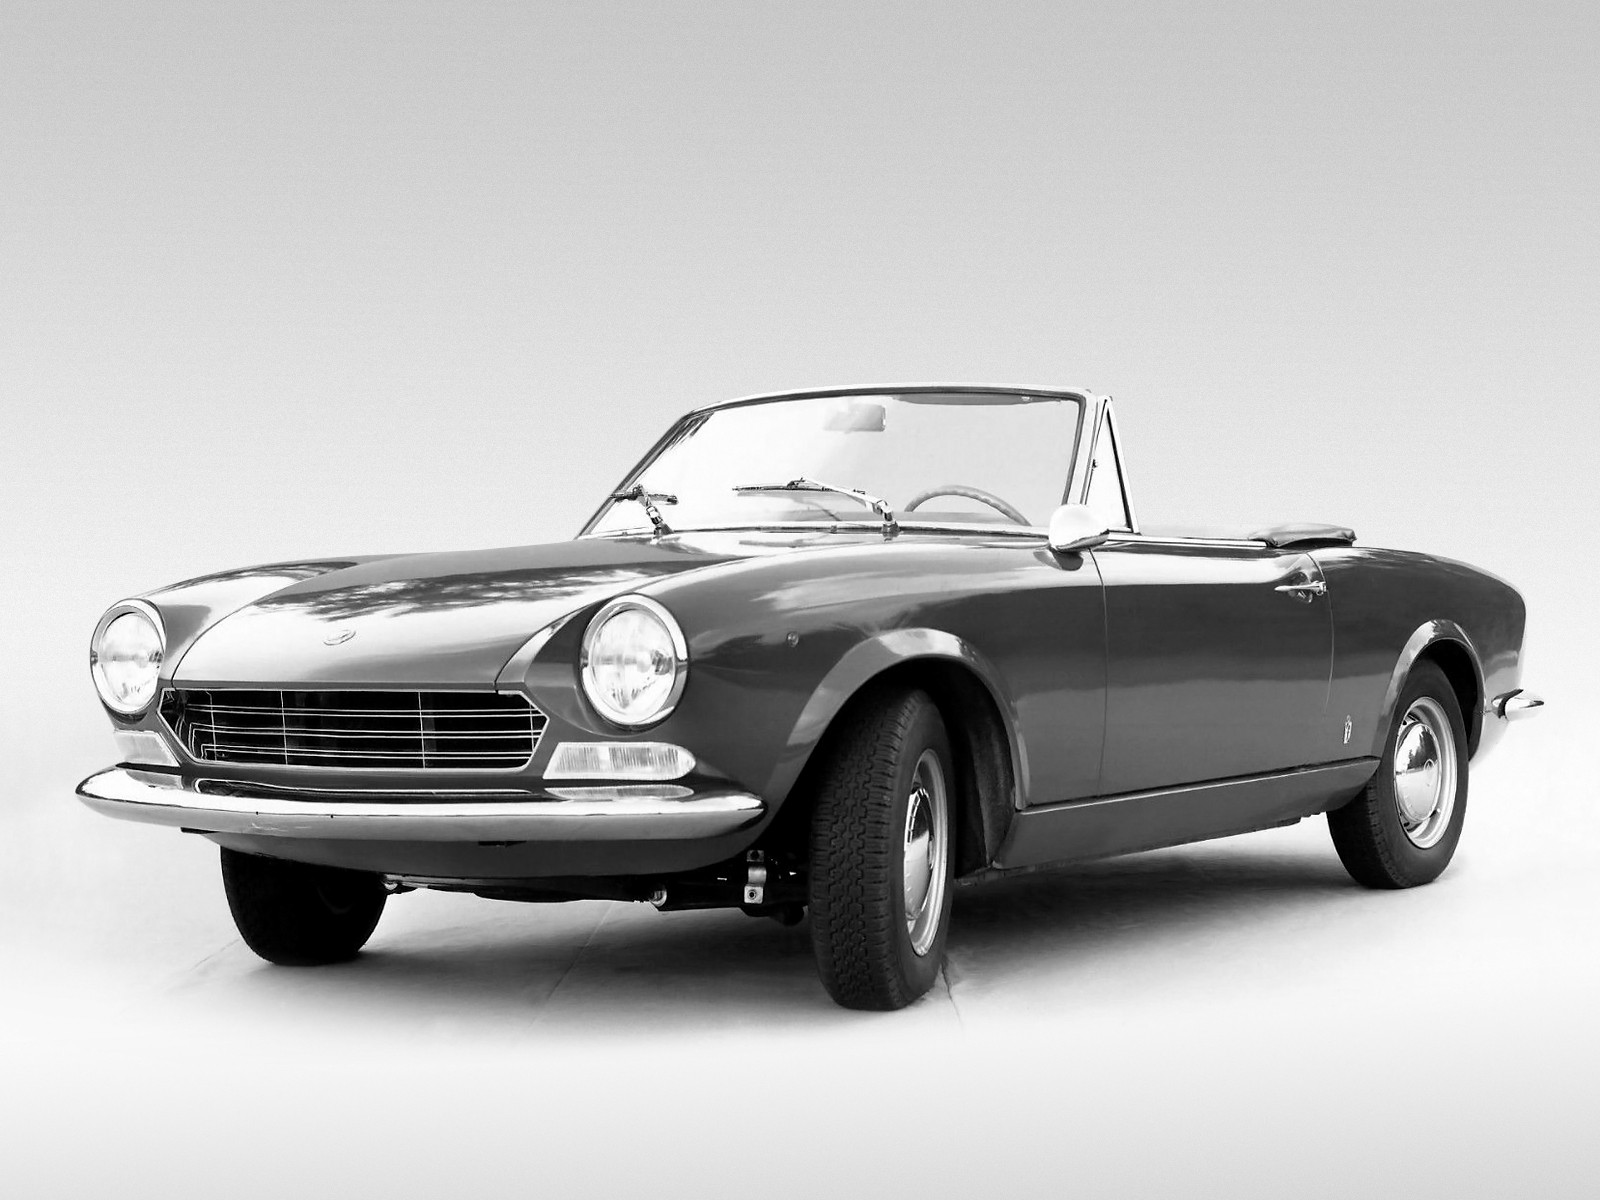 fiat 124 sport spider specs 1966 1967 1968 1969 autoevolution. Black Bedroom Furniture Sets. Home Design Ideas